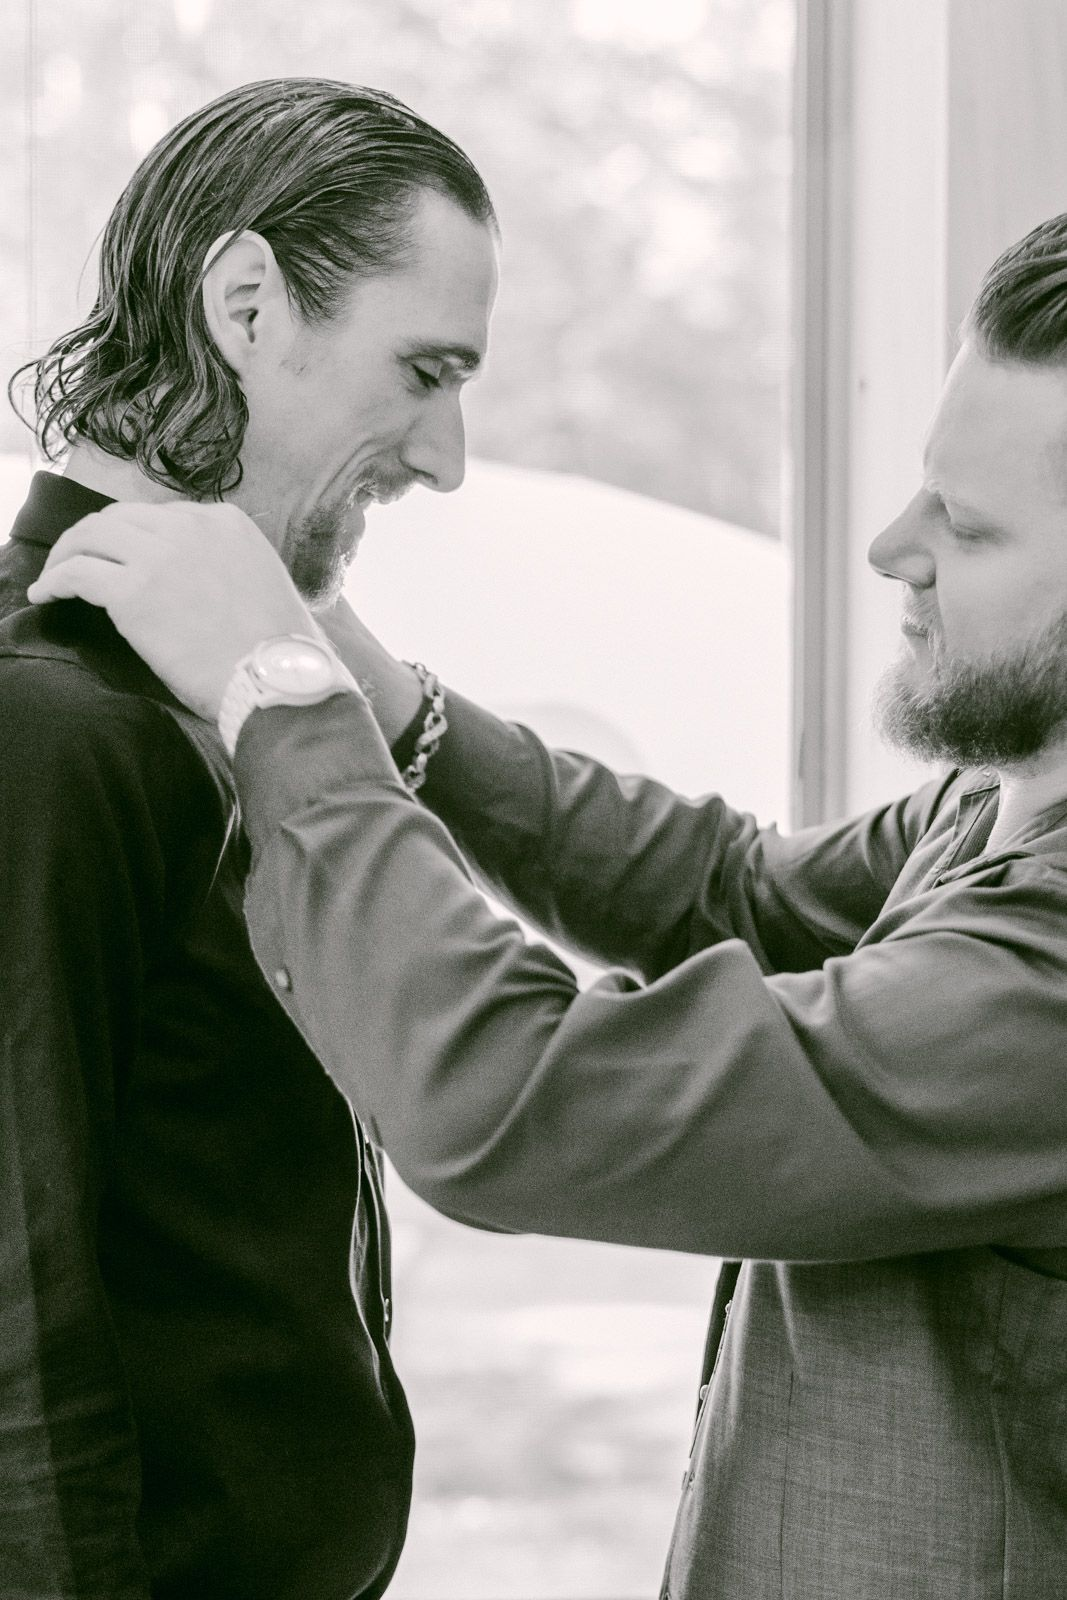 Details of Groom getting ready with friend